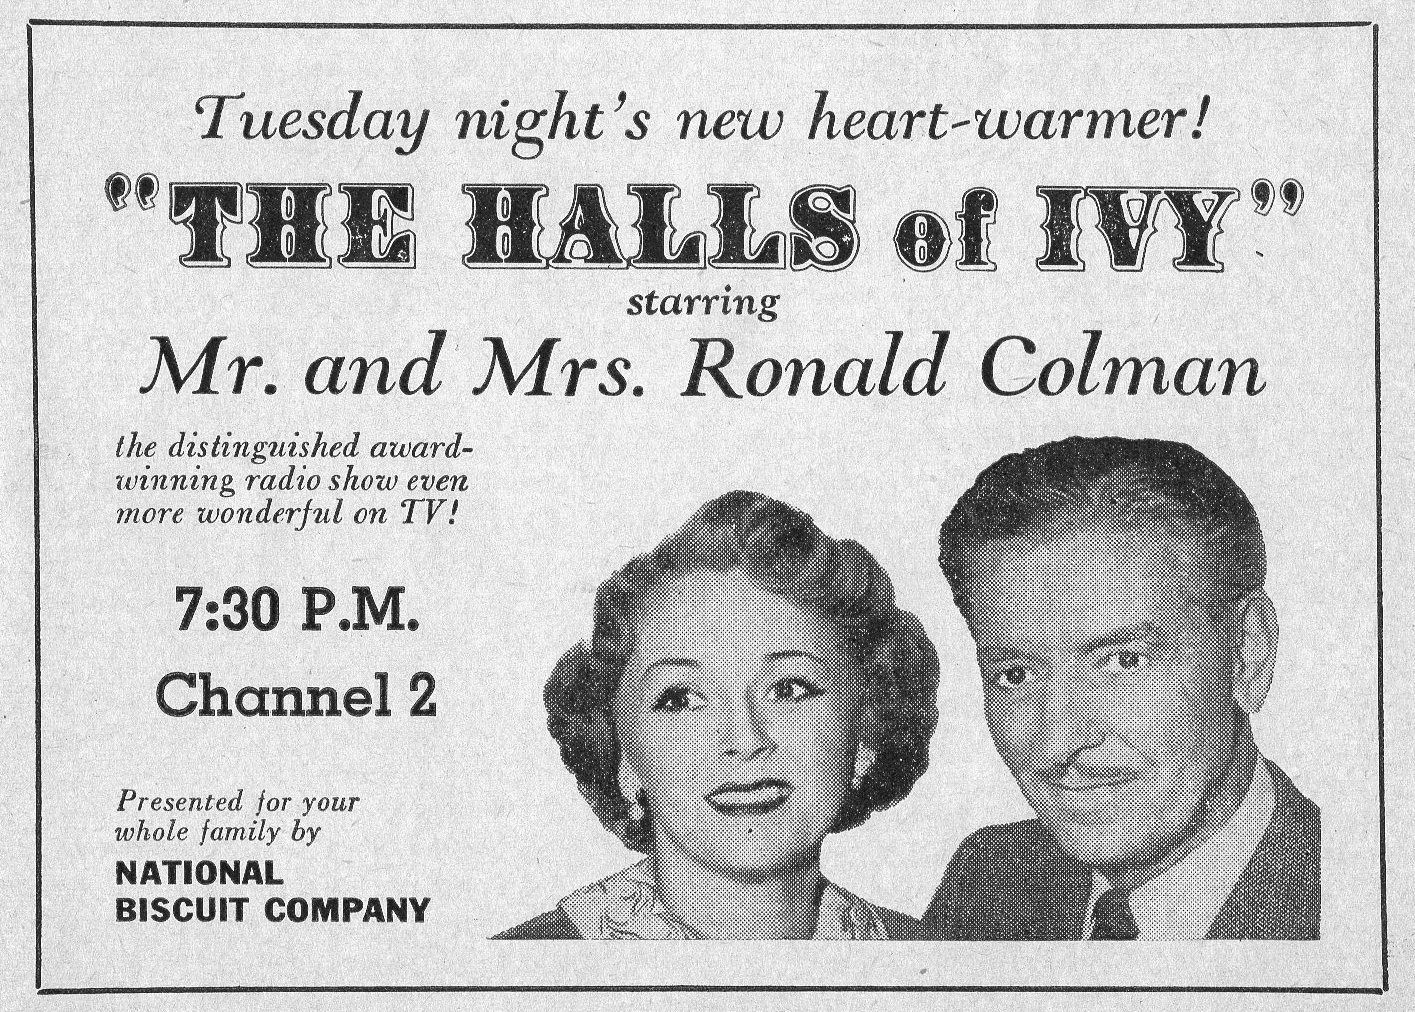 1954_TV_AD_WOC_MR_AND_MRS_RONALD_COLMAN